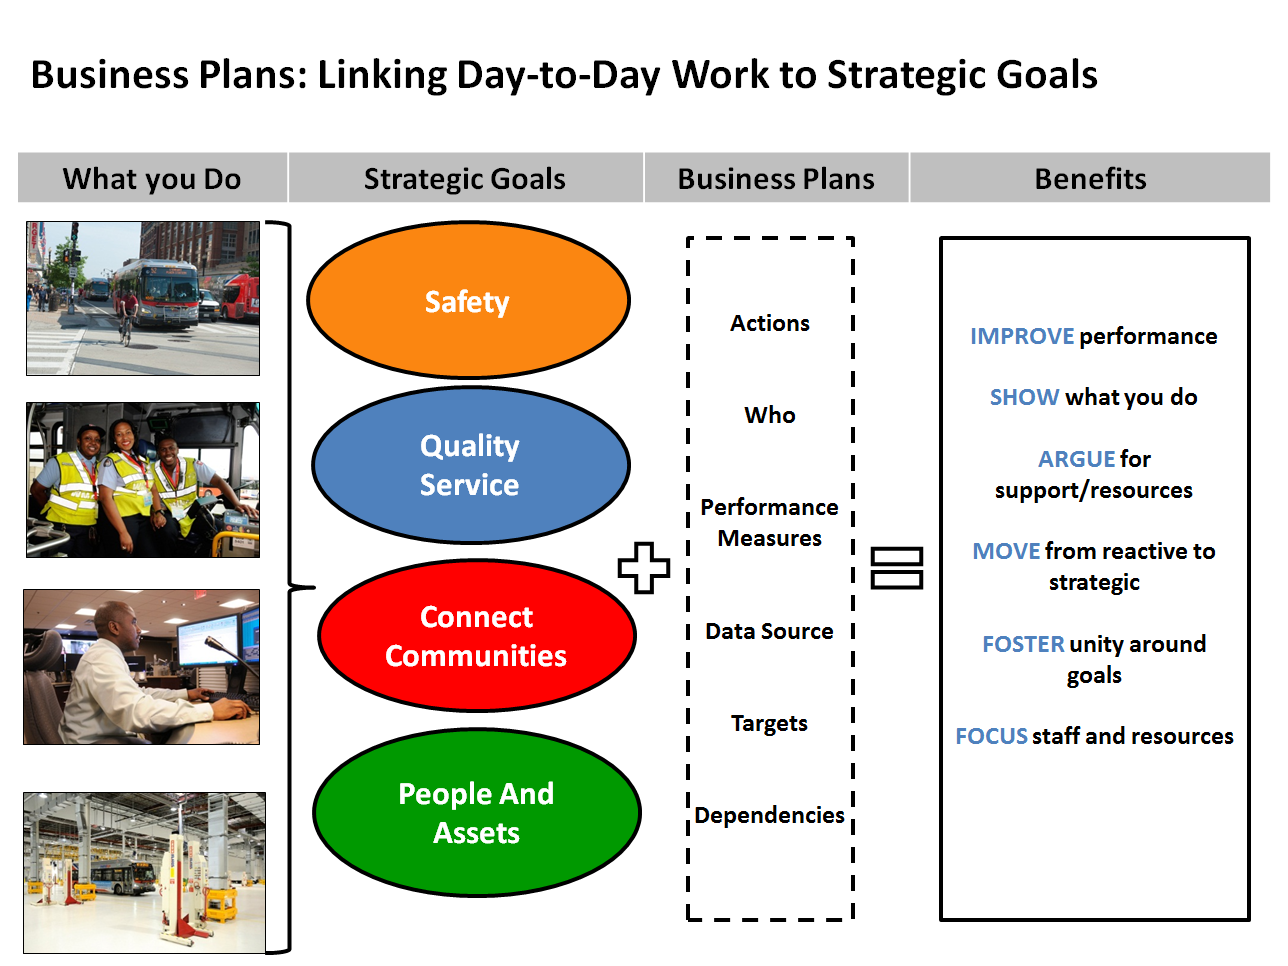 Business plans: linkin gday to day work to strategic goals. What you do, strategic goals, business plans, benefits clearly connected.